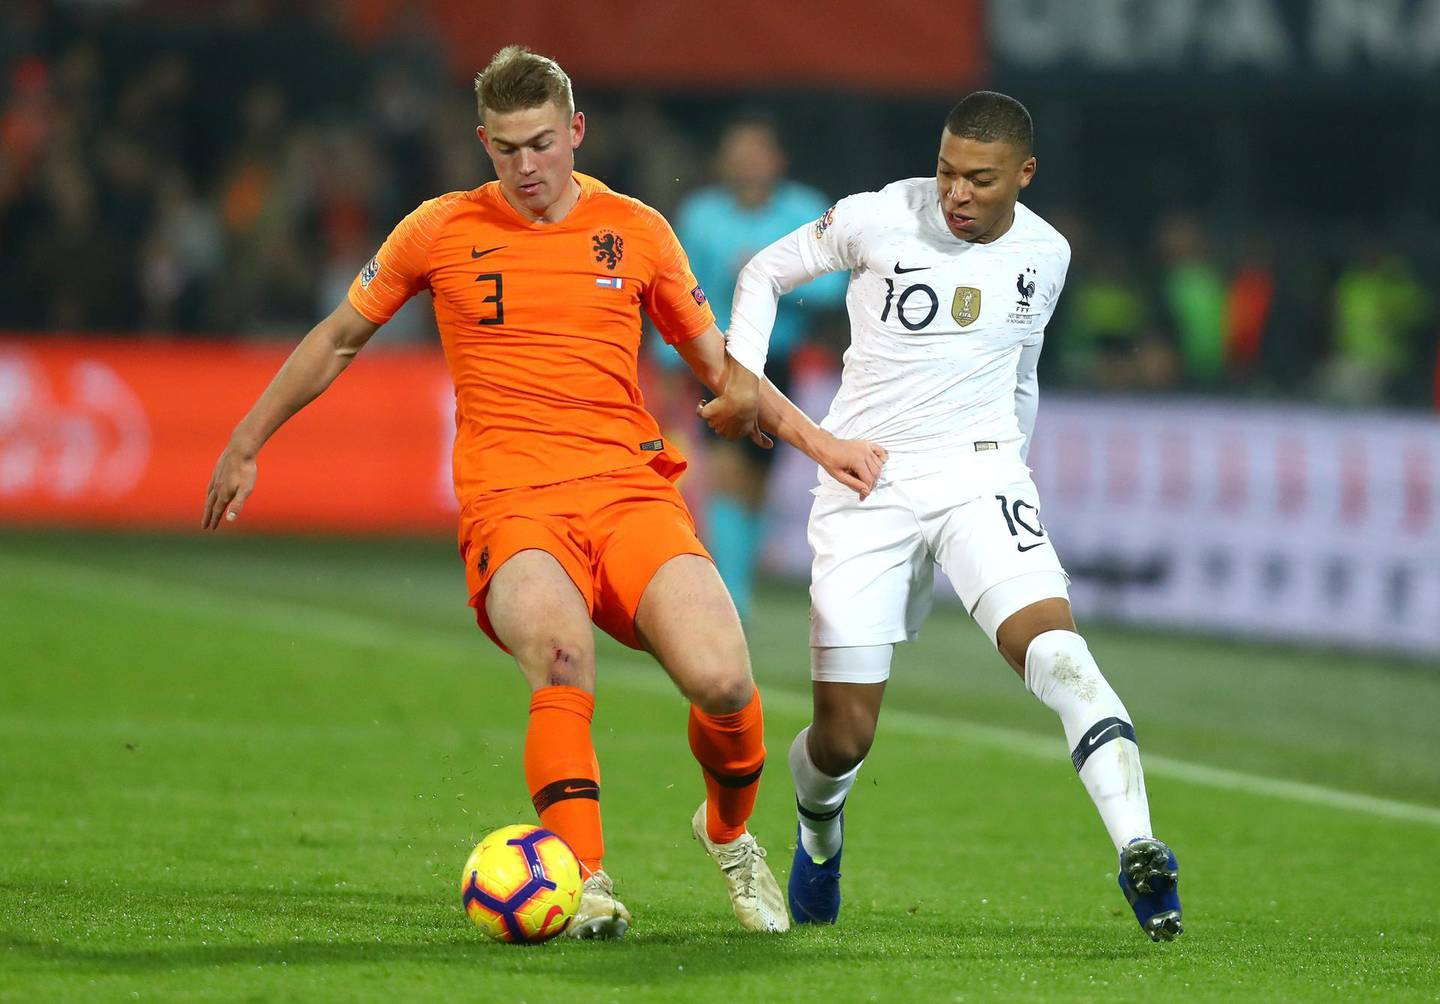 AMSTERDAM, NETHERLANDS - NOVEMBER 16: Matthijs de Ligt of the Netherlands is challenged by Kylian Mbappe-Lottin of France during the UEFA Nations League Group A match between Netherlands and France at the Stadion Feijenoord on November 16, 2018 in Amsterdam, Netherlands.  (Photo by Dean Mouhtaropoulos/Getty Images)